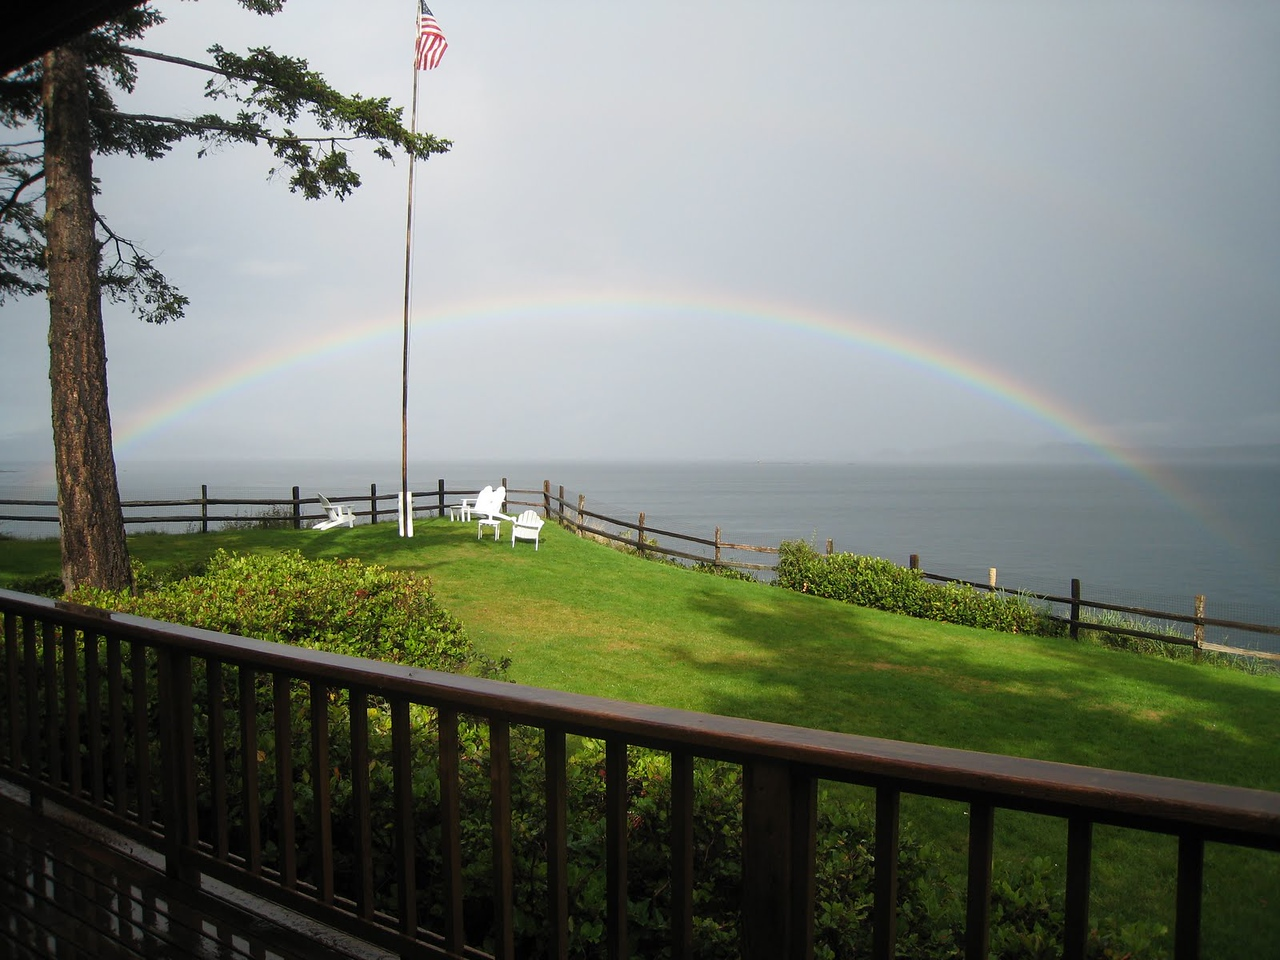 It was a rainy day, and this double rainbow formed across the back yard of the house - COOL!